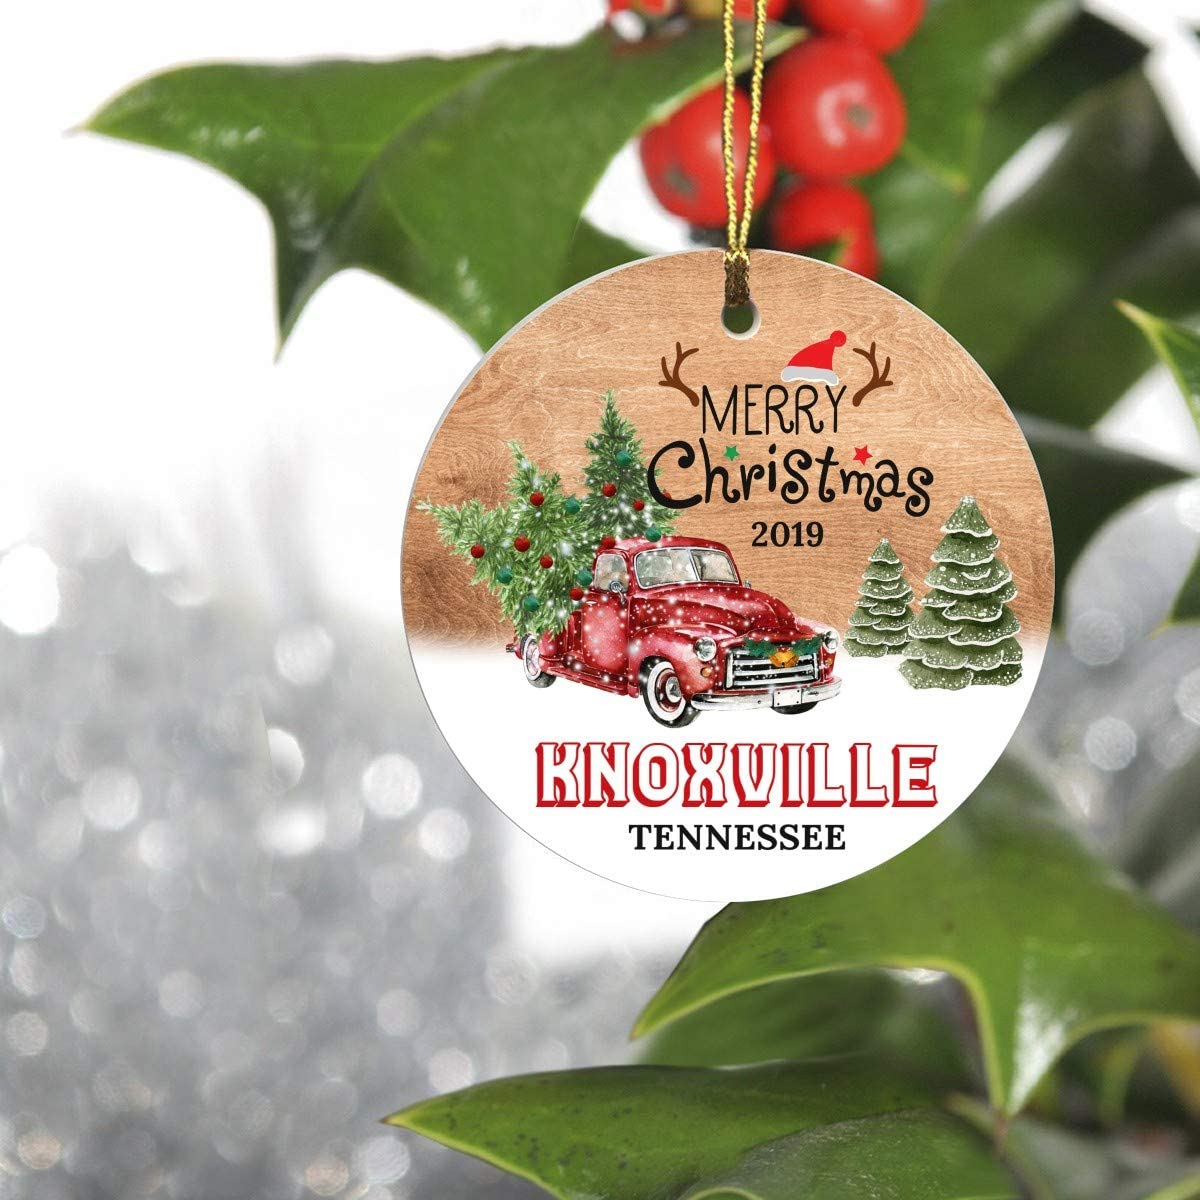 """Merry Christmas Tree Decorations Ornaments 2019 - Ornament Hometown Knoxville Tennessee TN State - Keepsake Gift Ideas Ornament 3"""" for Family, Friend and Housewarming"""